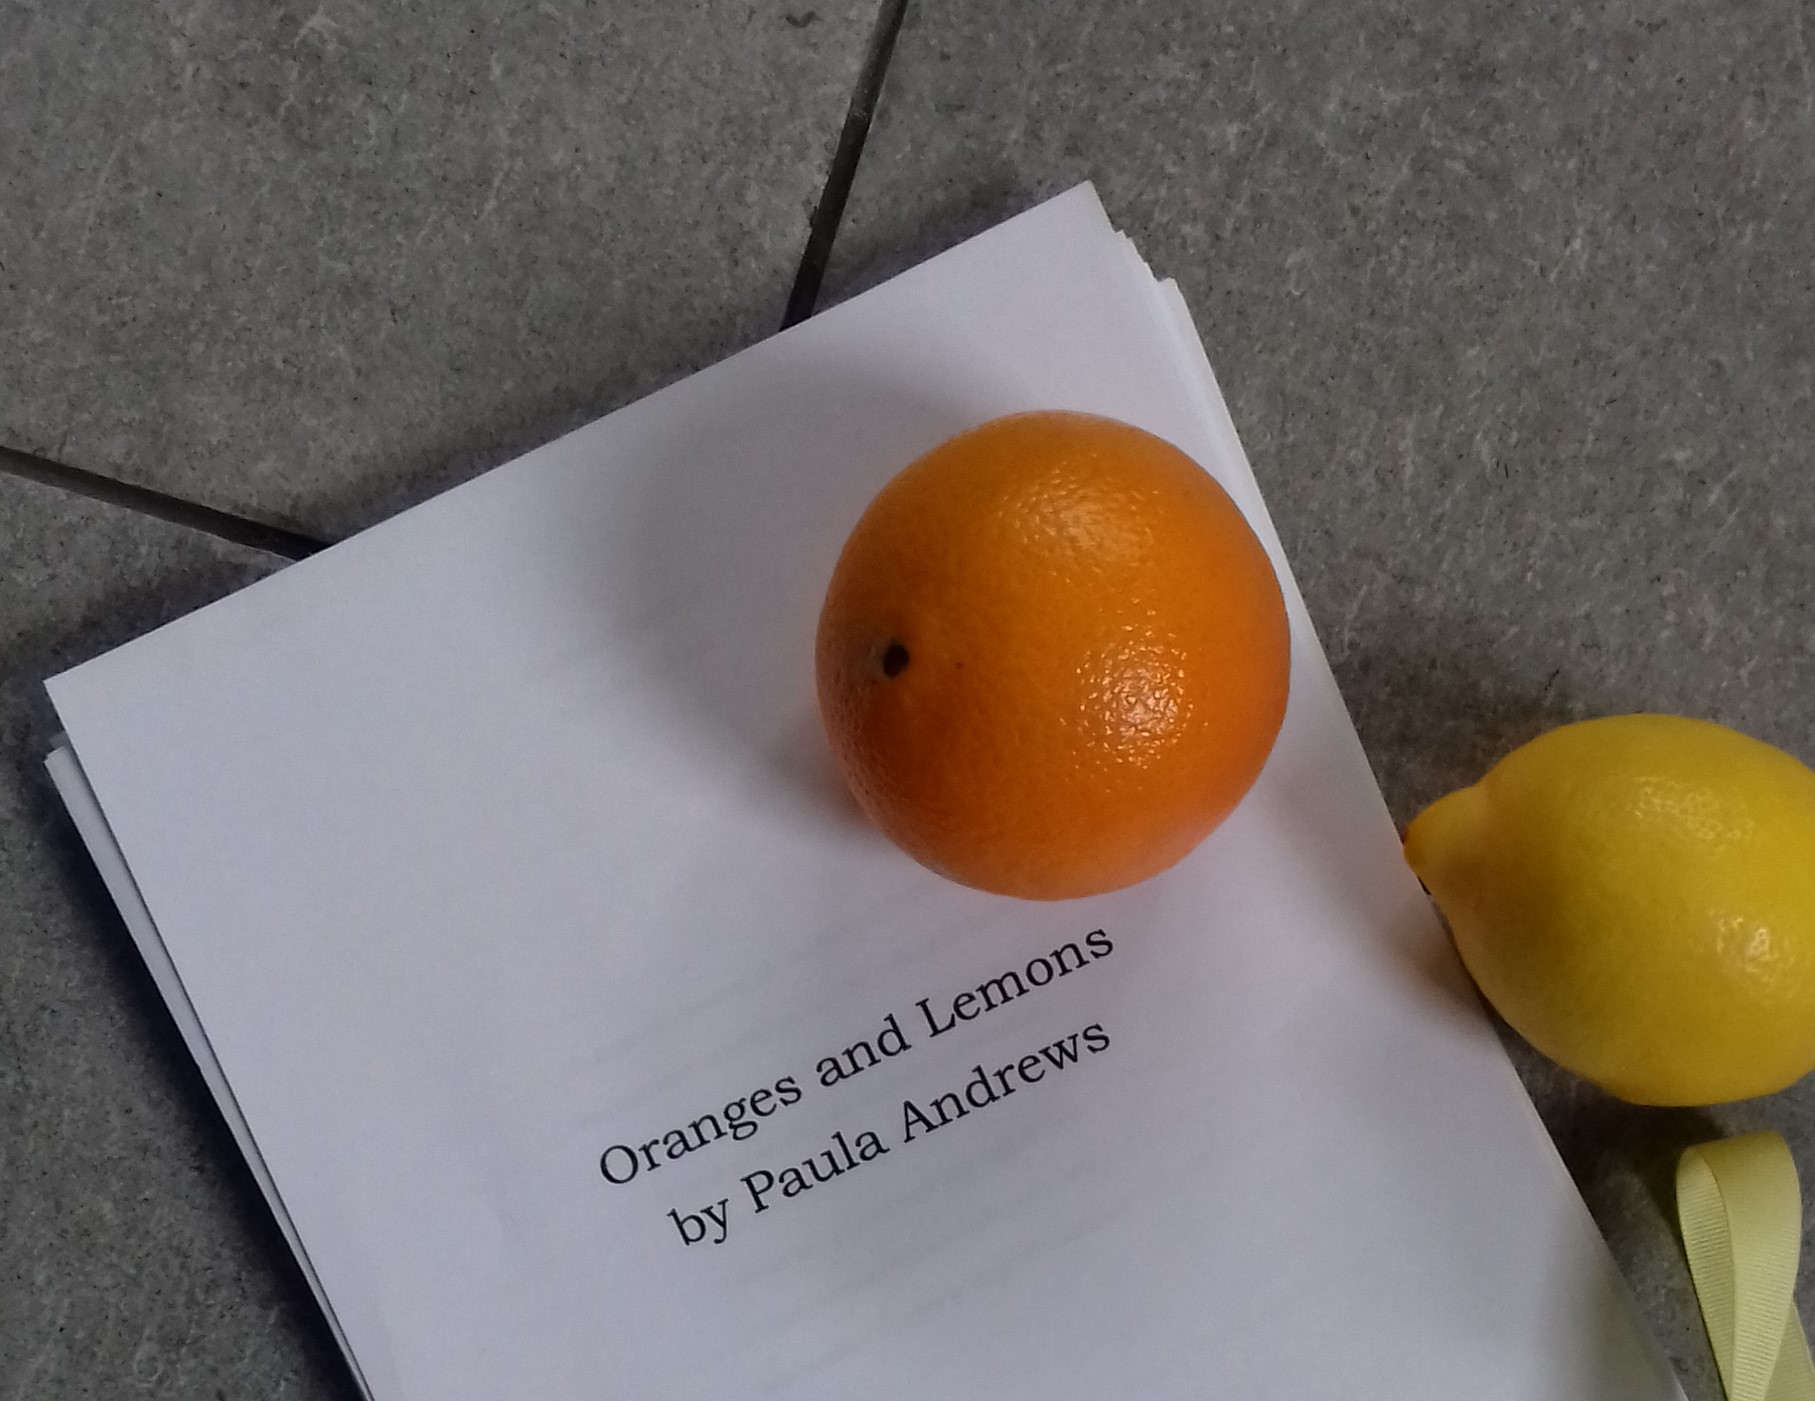 image of manuscript for Oranges and Lemons with an orange and a lemon on top